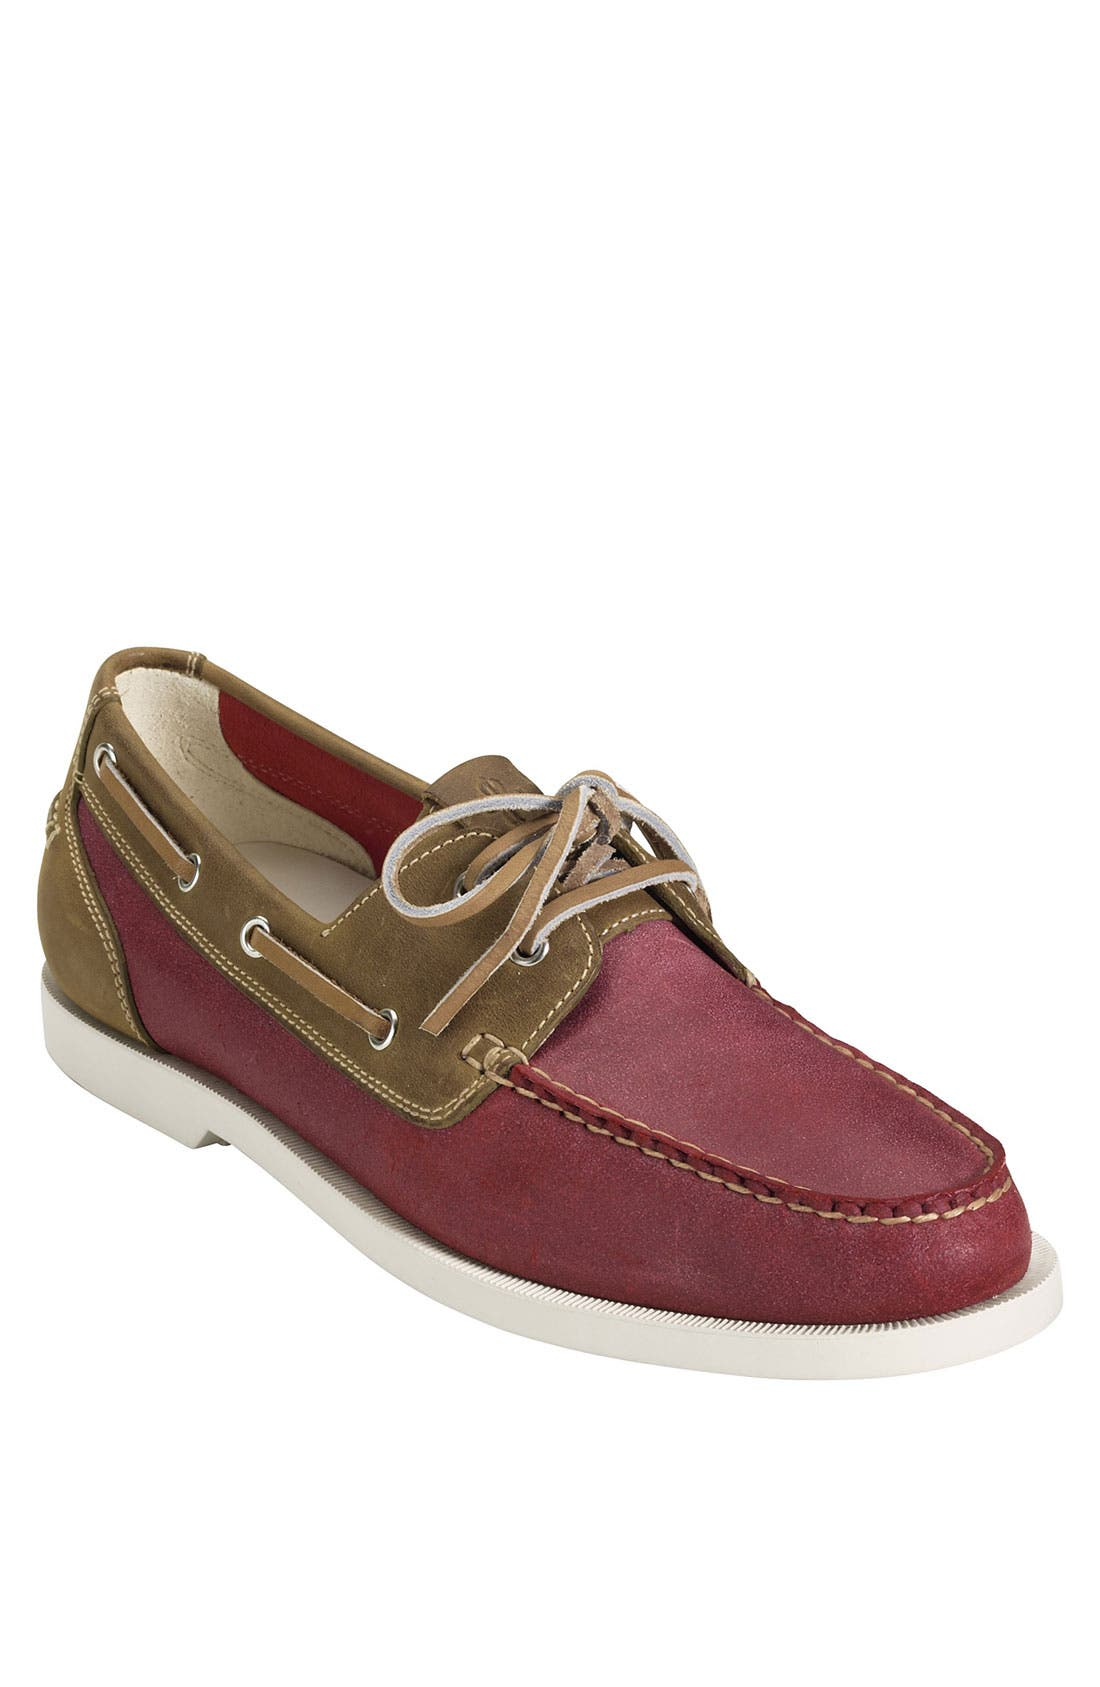 Alternate Image 1 Selected - Cole Haan 'Air Yacht Club' Boat Shoe